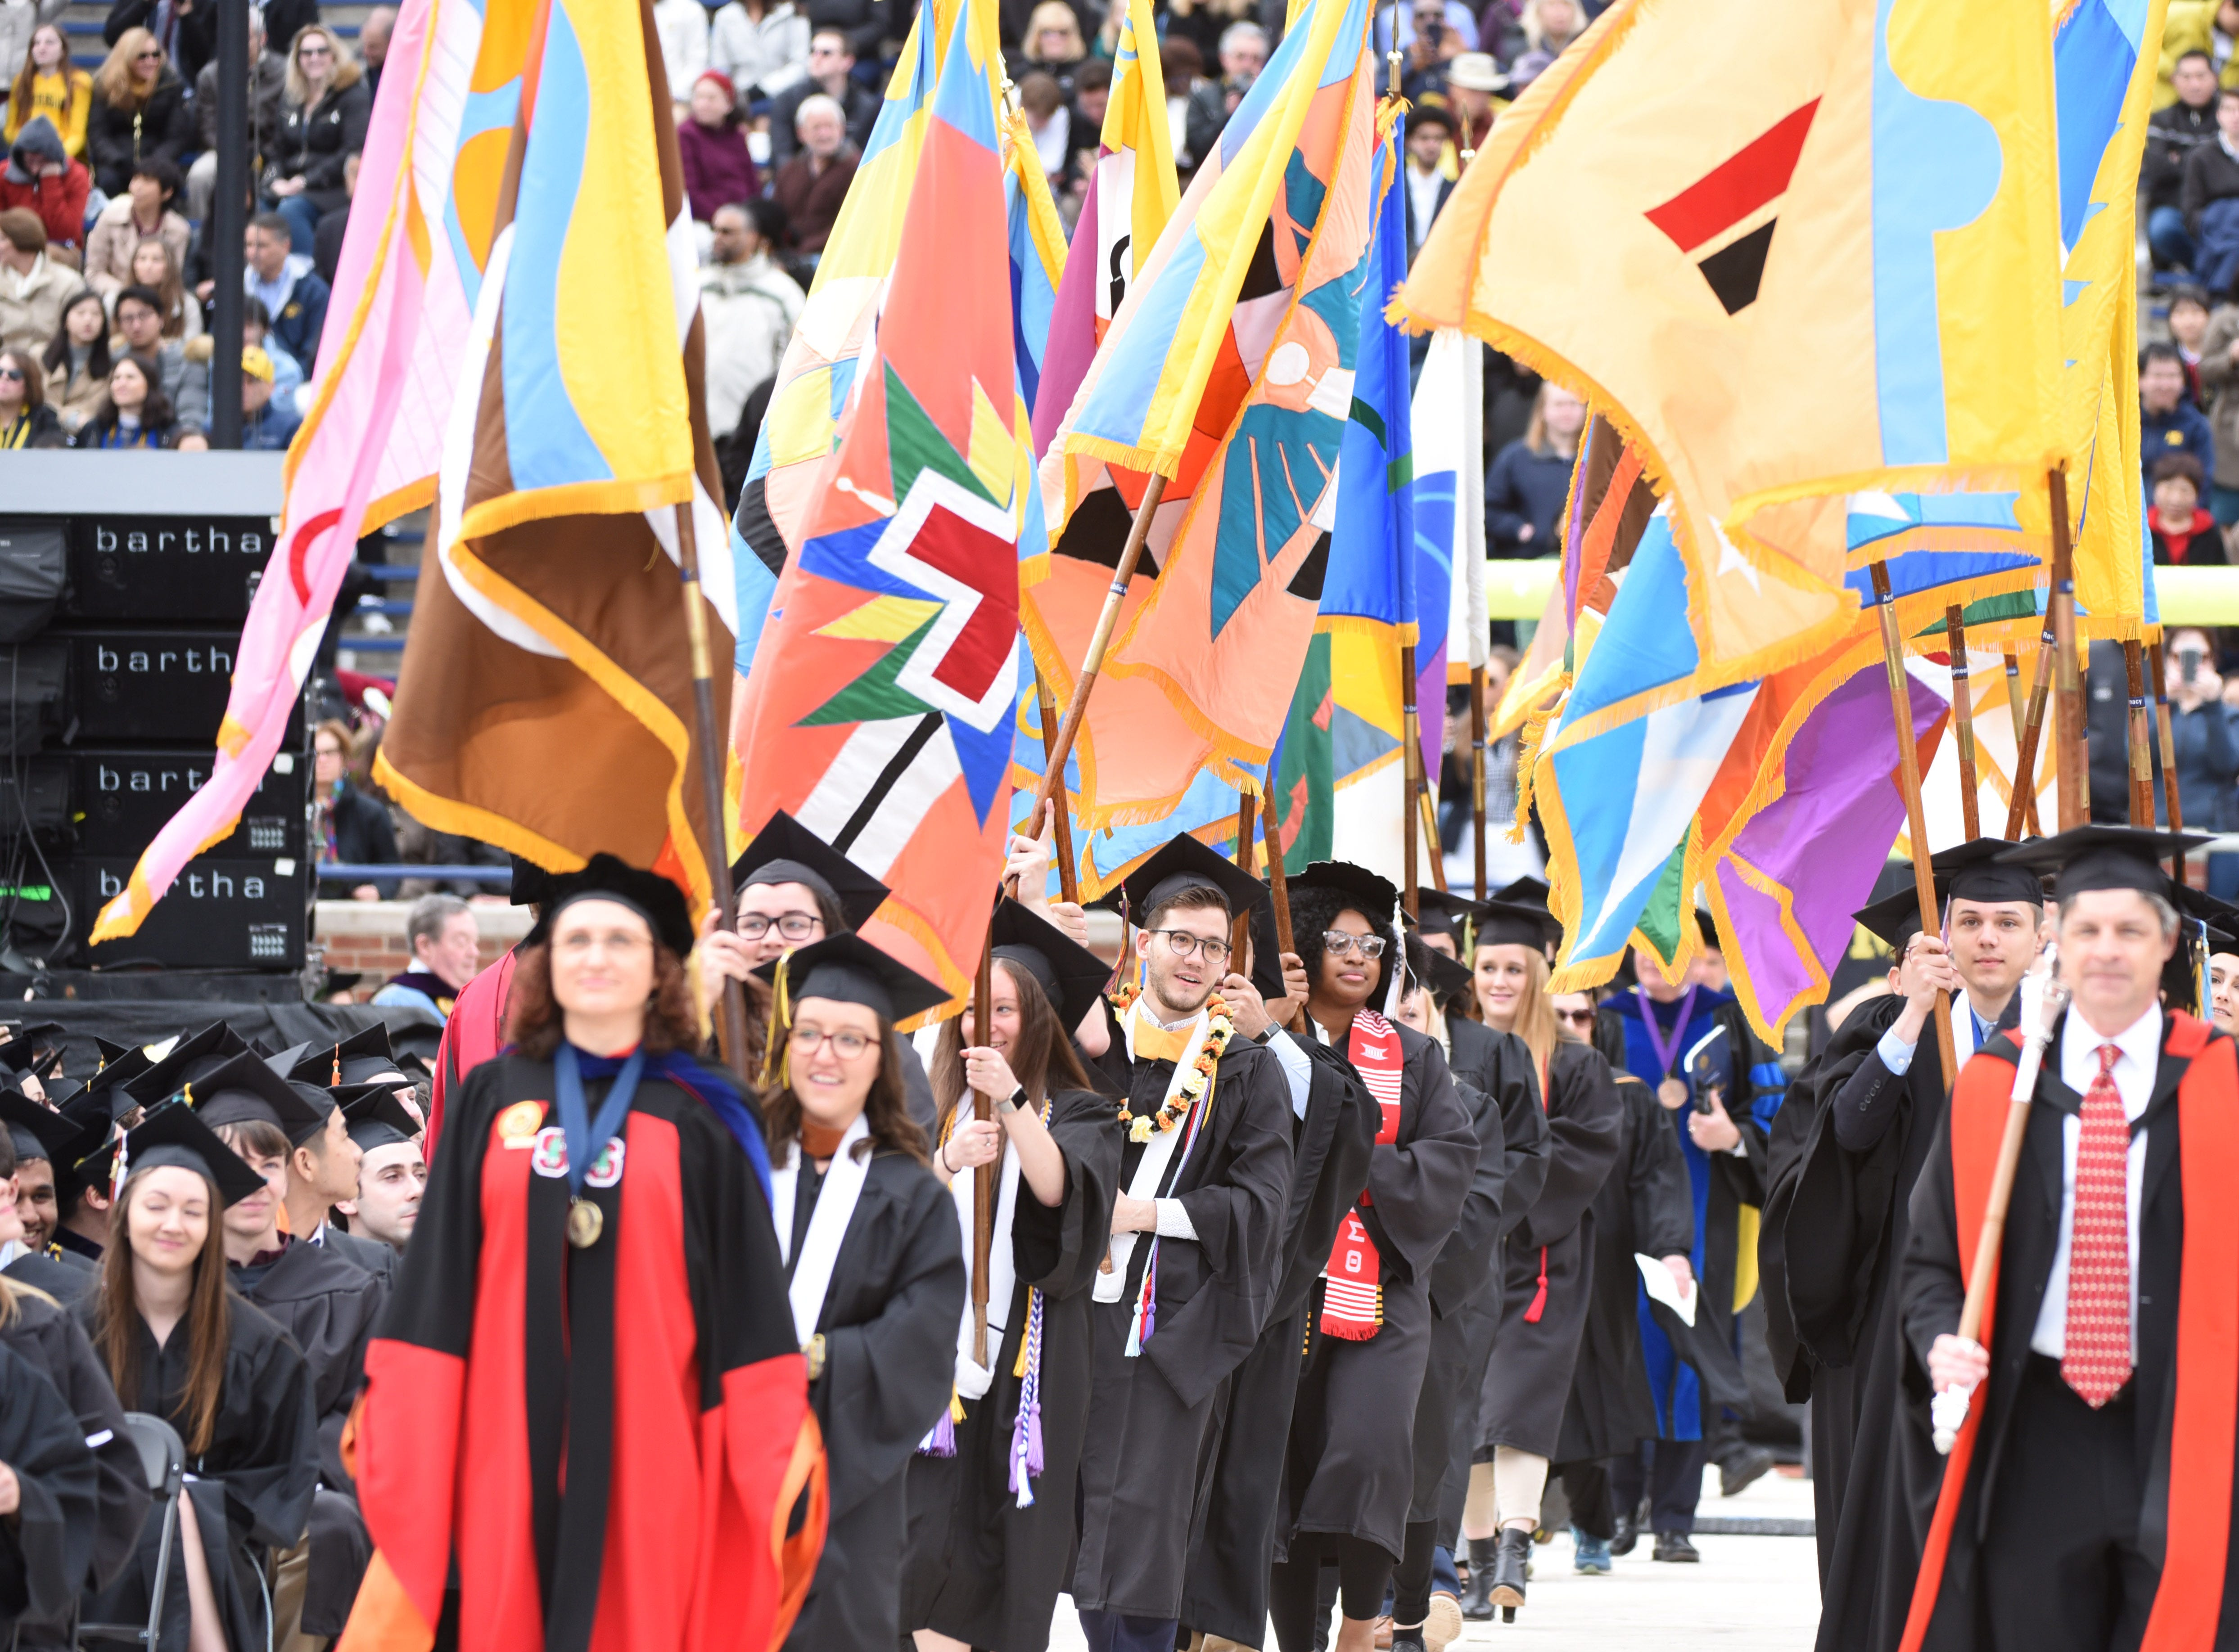 University of Michigan faculty are surrounded in colorful flags as they enter the Big House for commencement  in Ann Arbor.